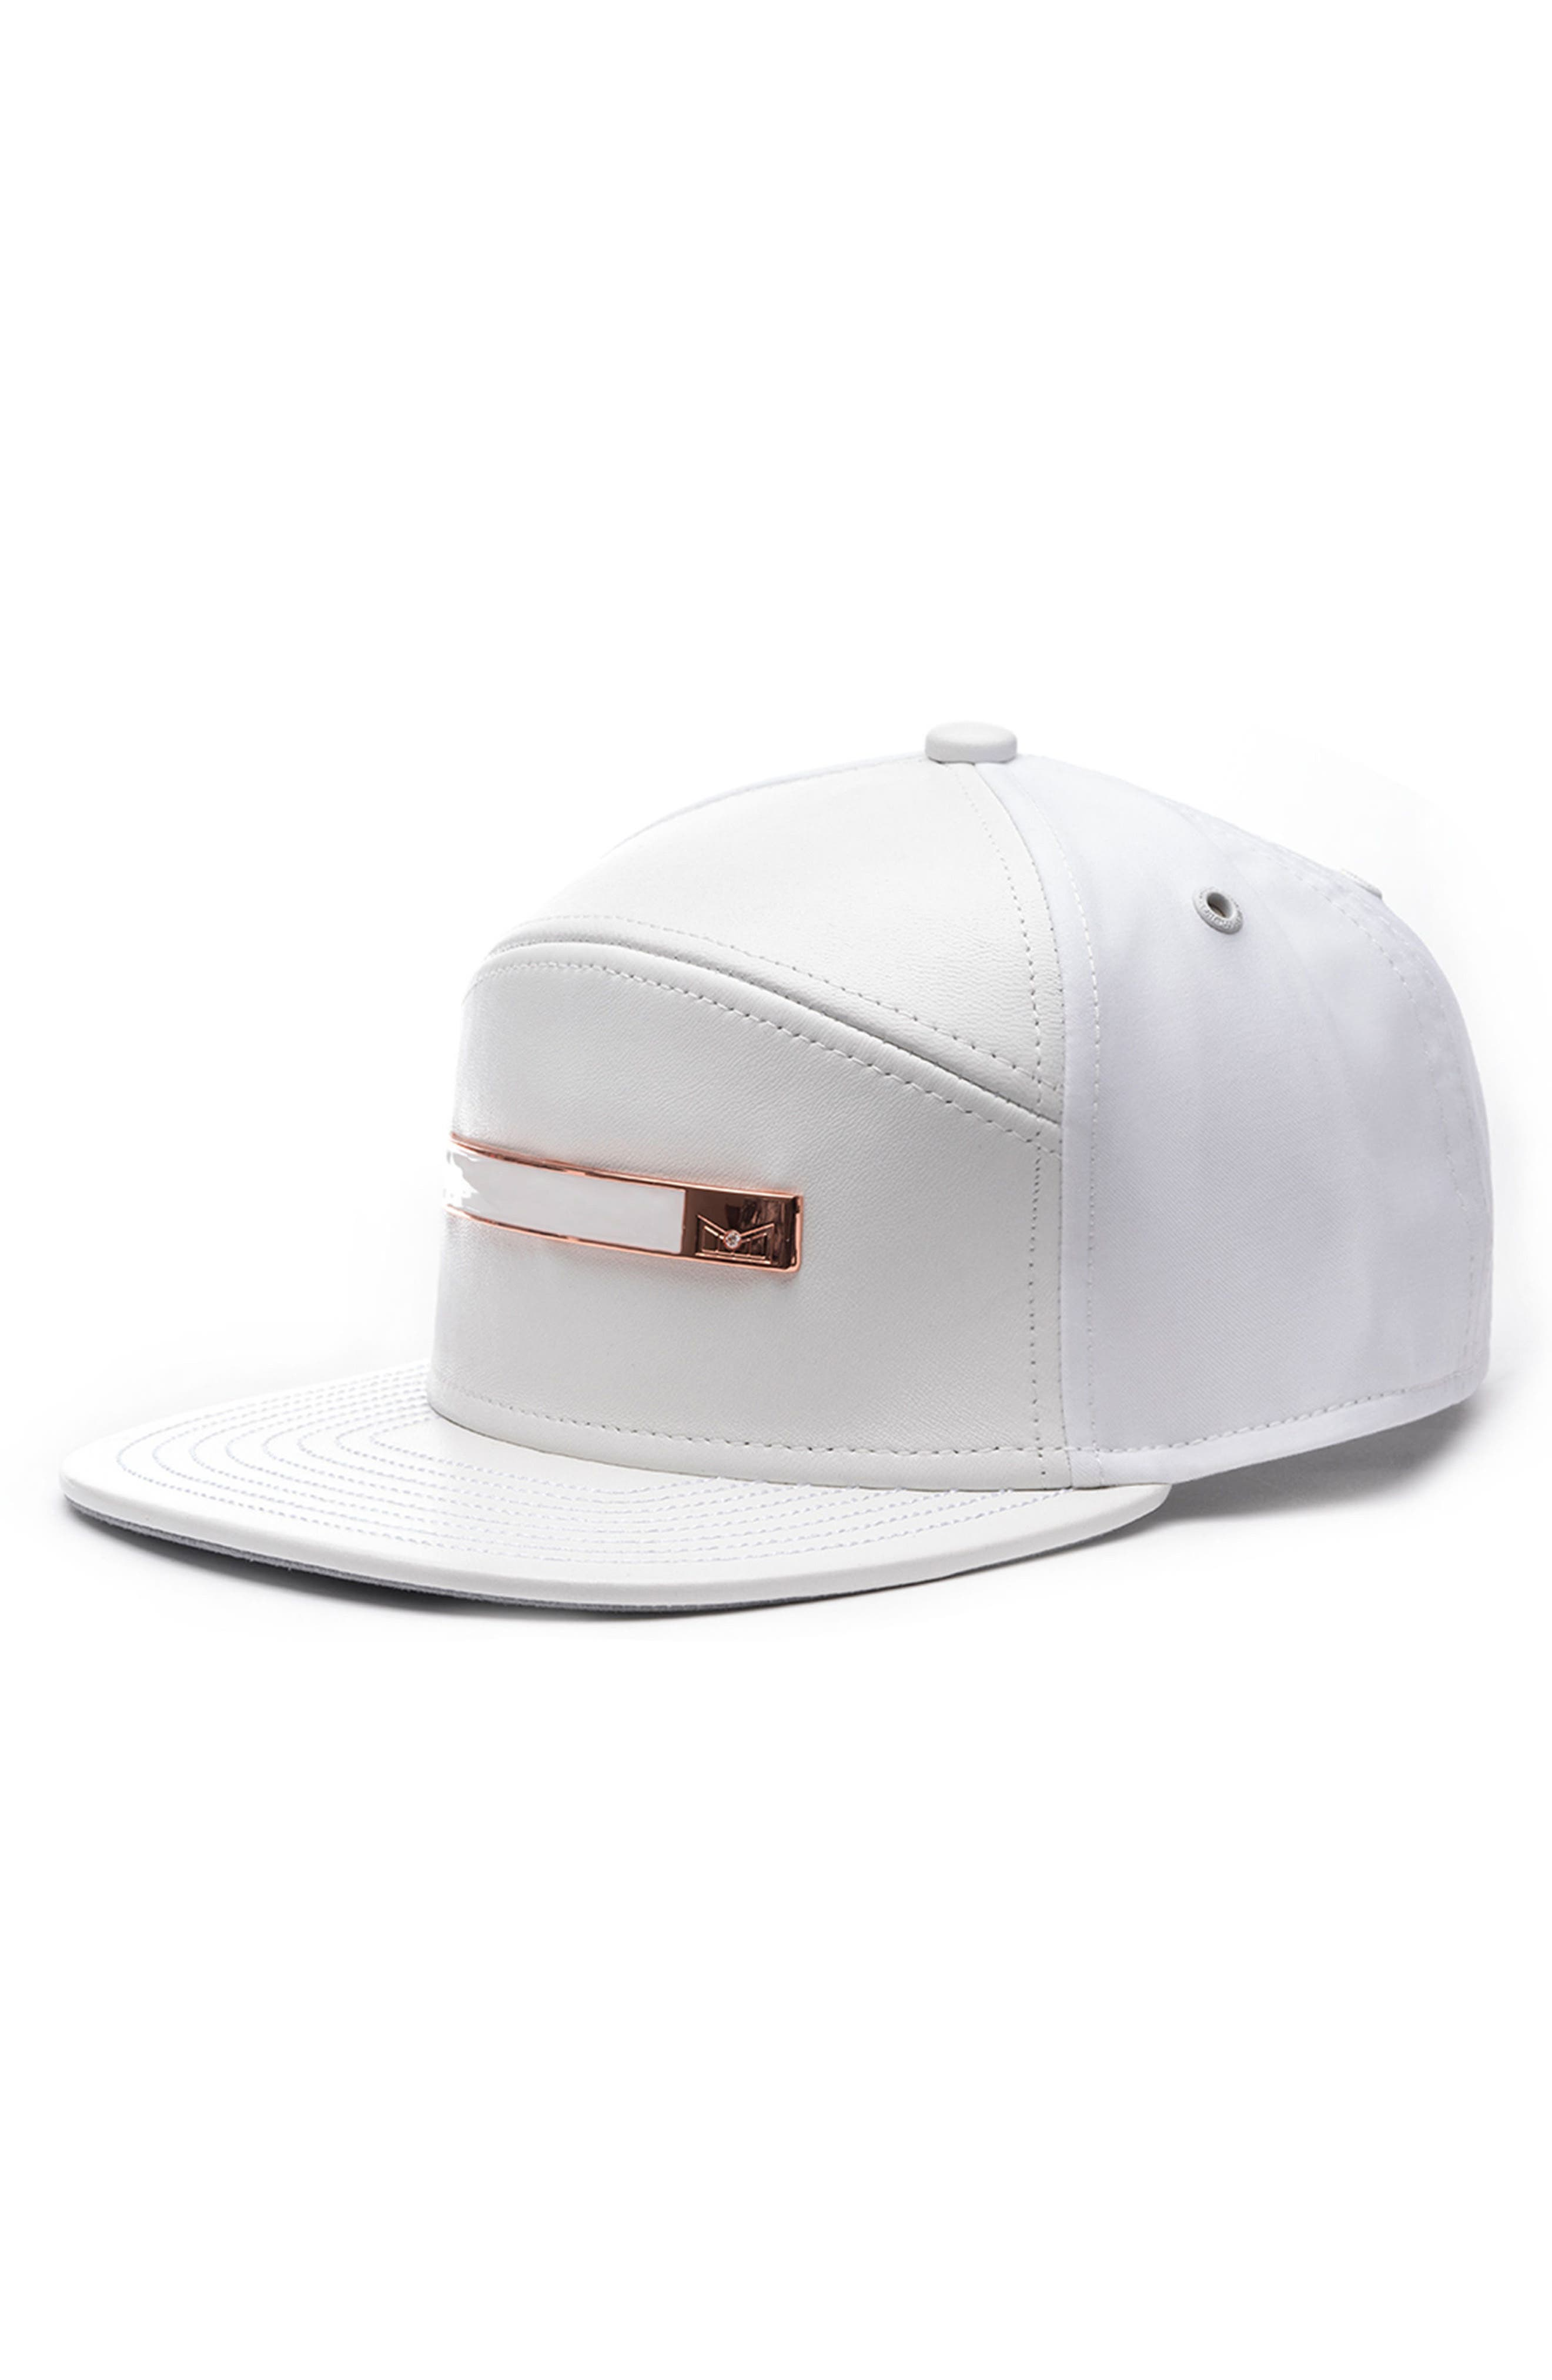 Dynasty V Limited Edition Leather, Cashmere, Wool & Diamond Cap,                             Main thumbnail 1, color,                             101